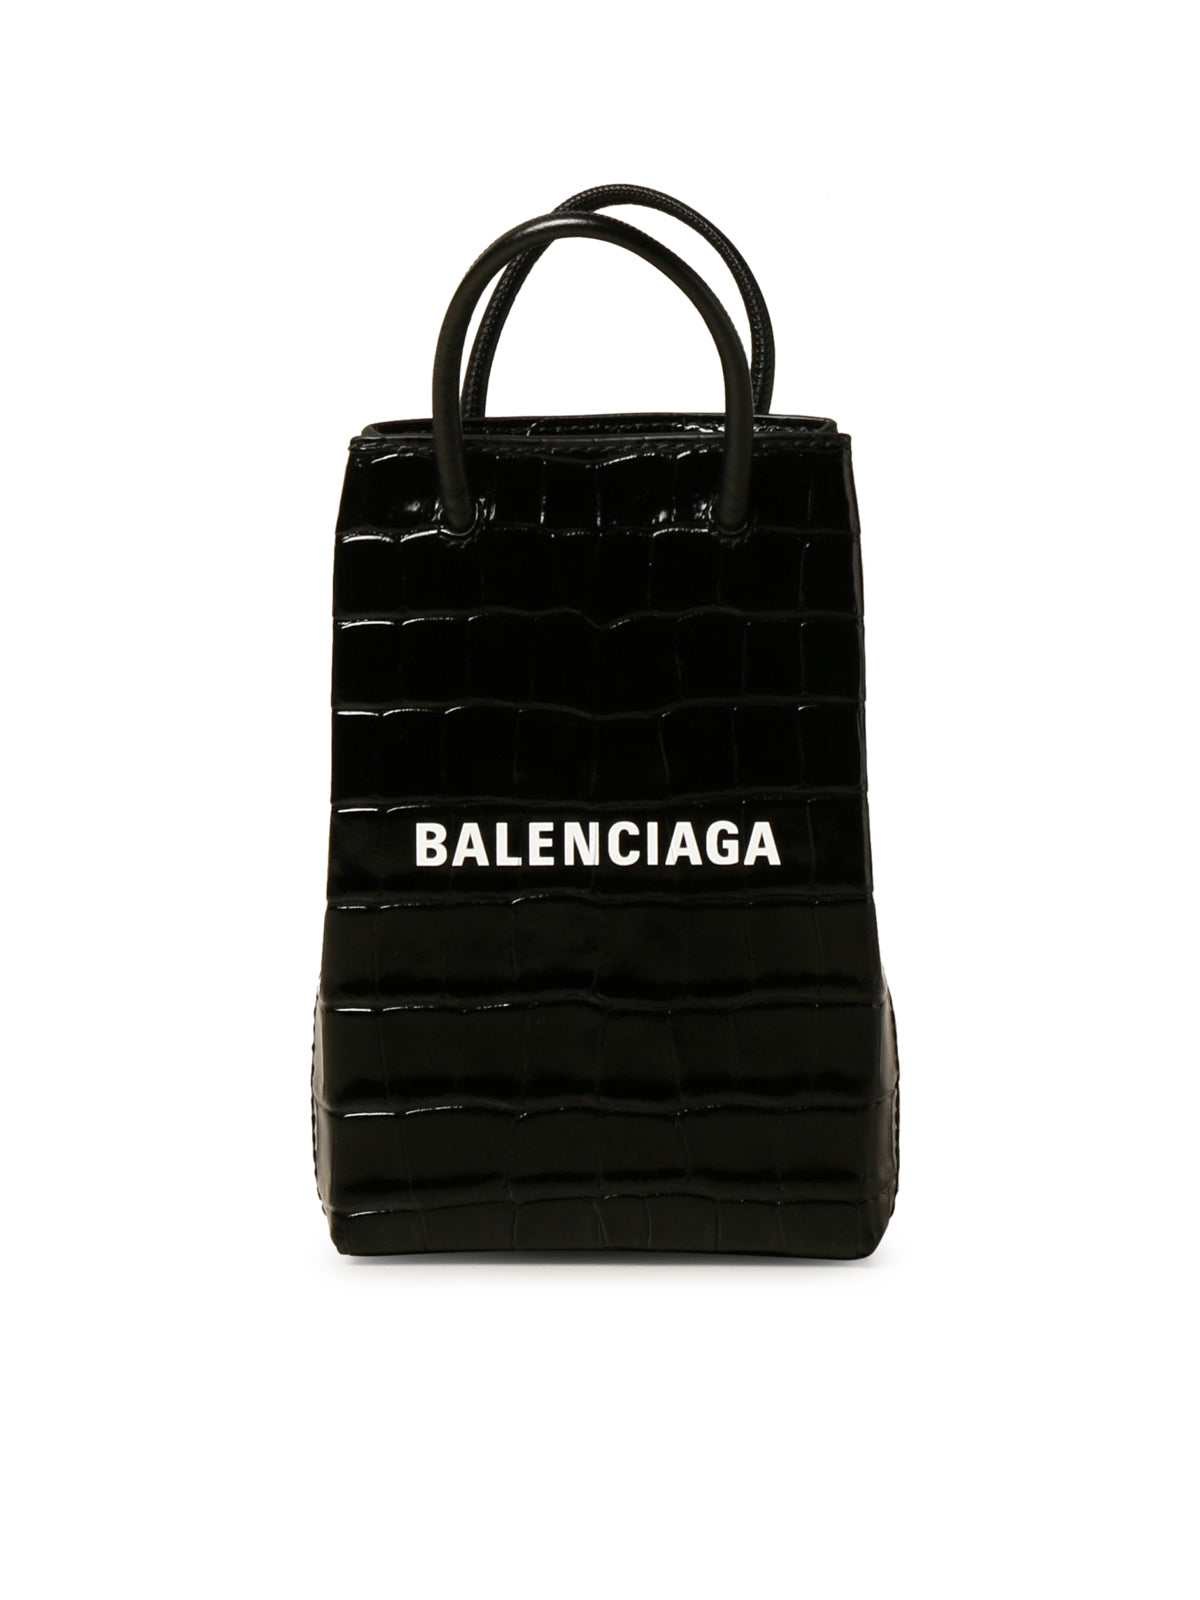 Balenciaga mobile phone bag in crocodile print leather with logo